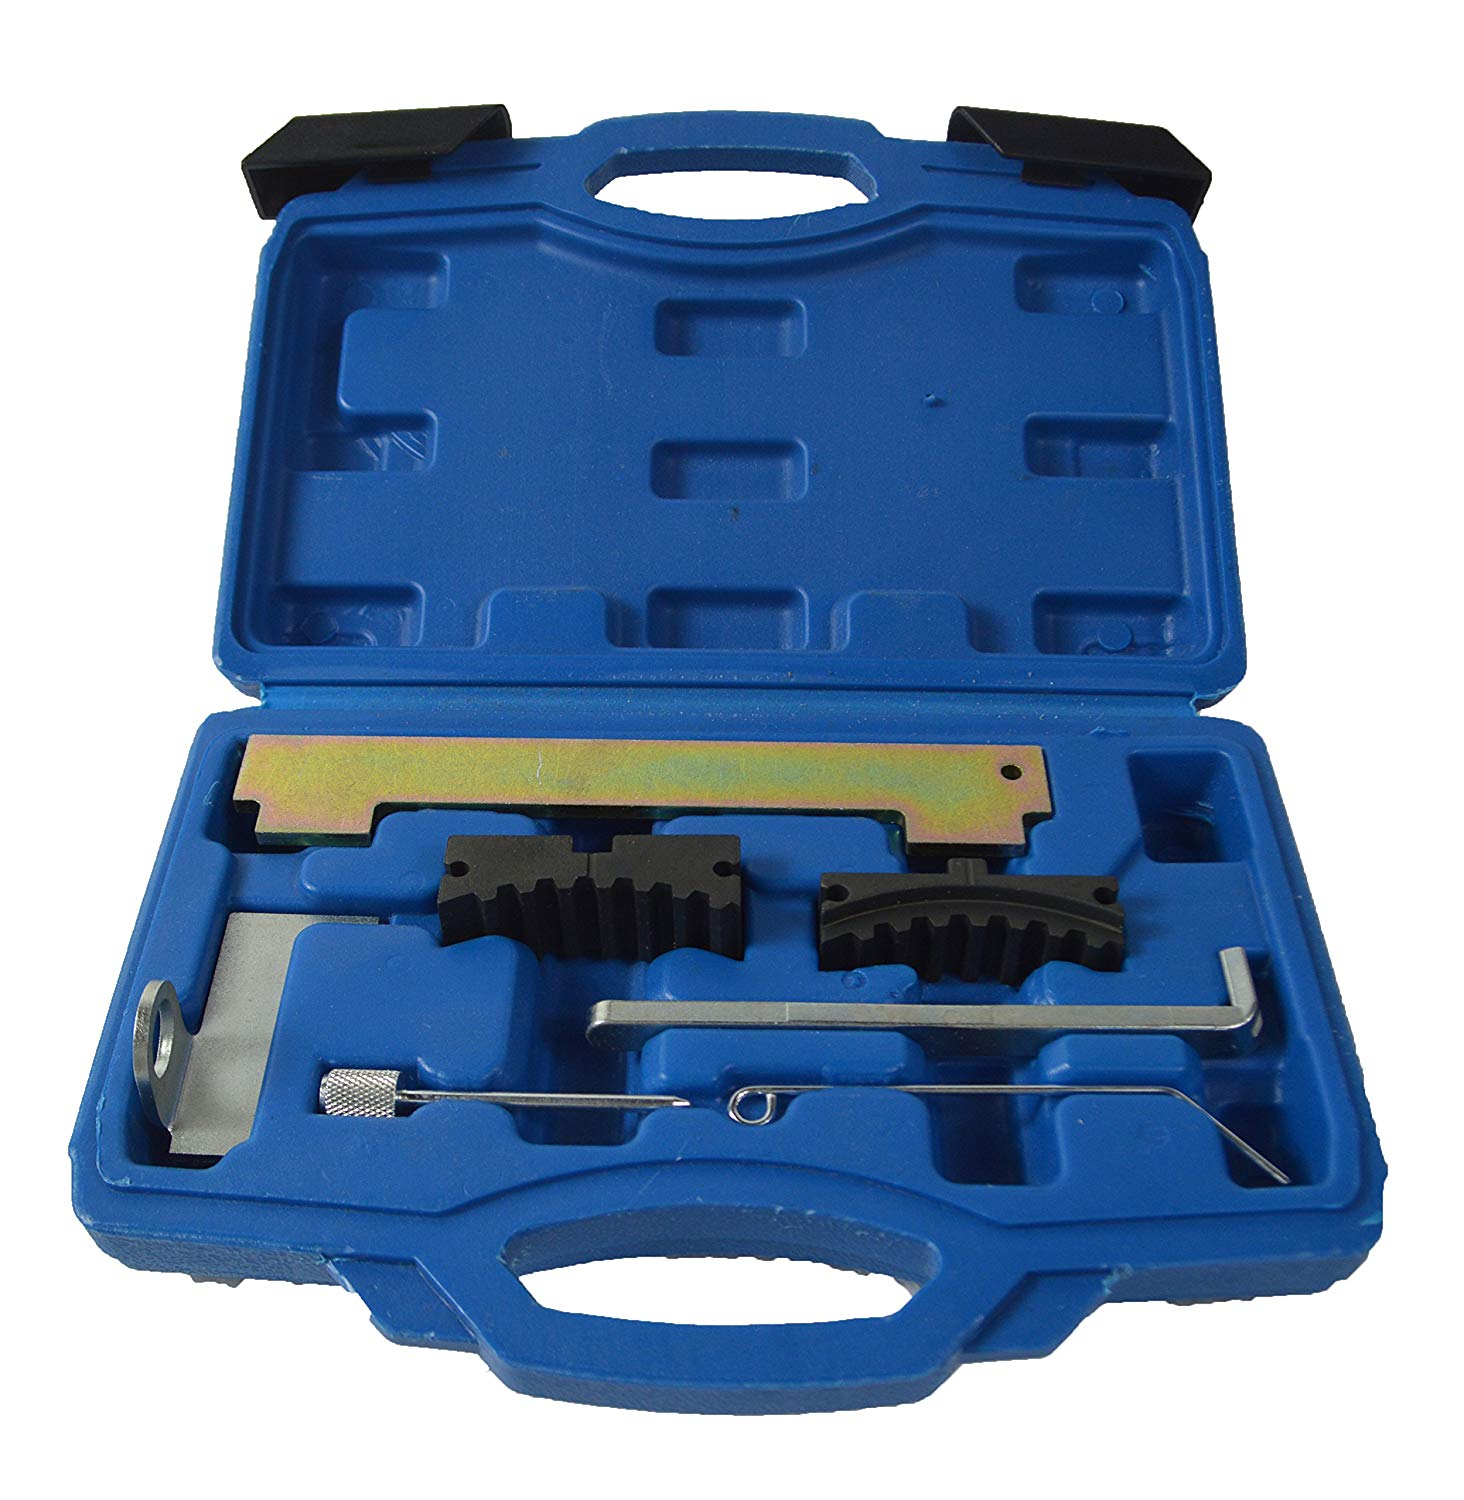 Chevrolet 1.6 1.8 Camshaft Tensioning Locking Alignment Timing Tool Kit New